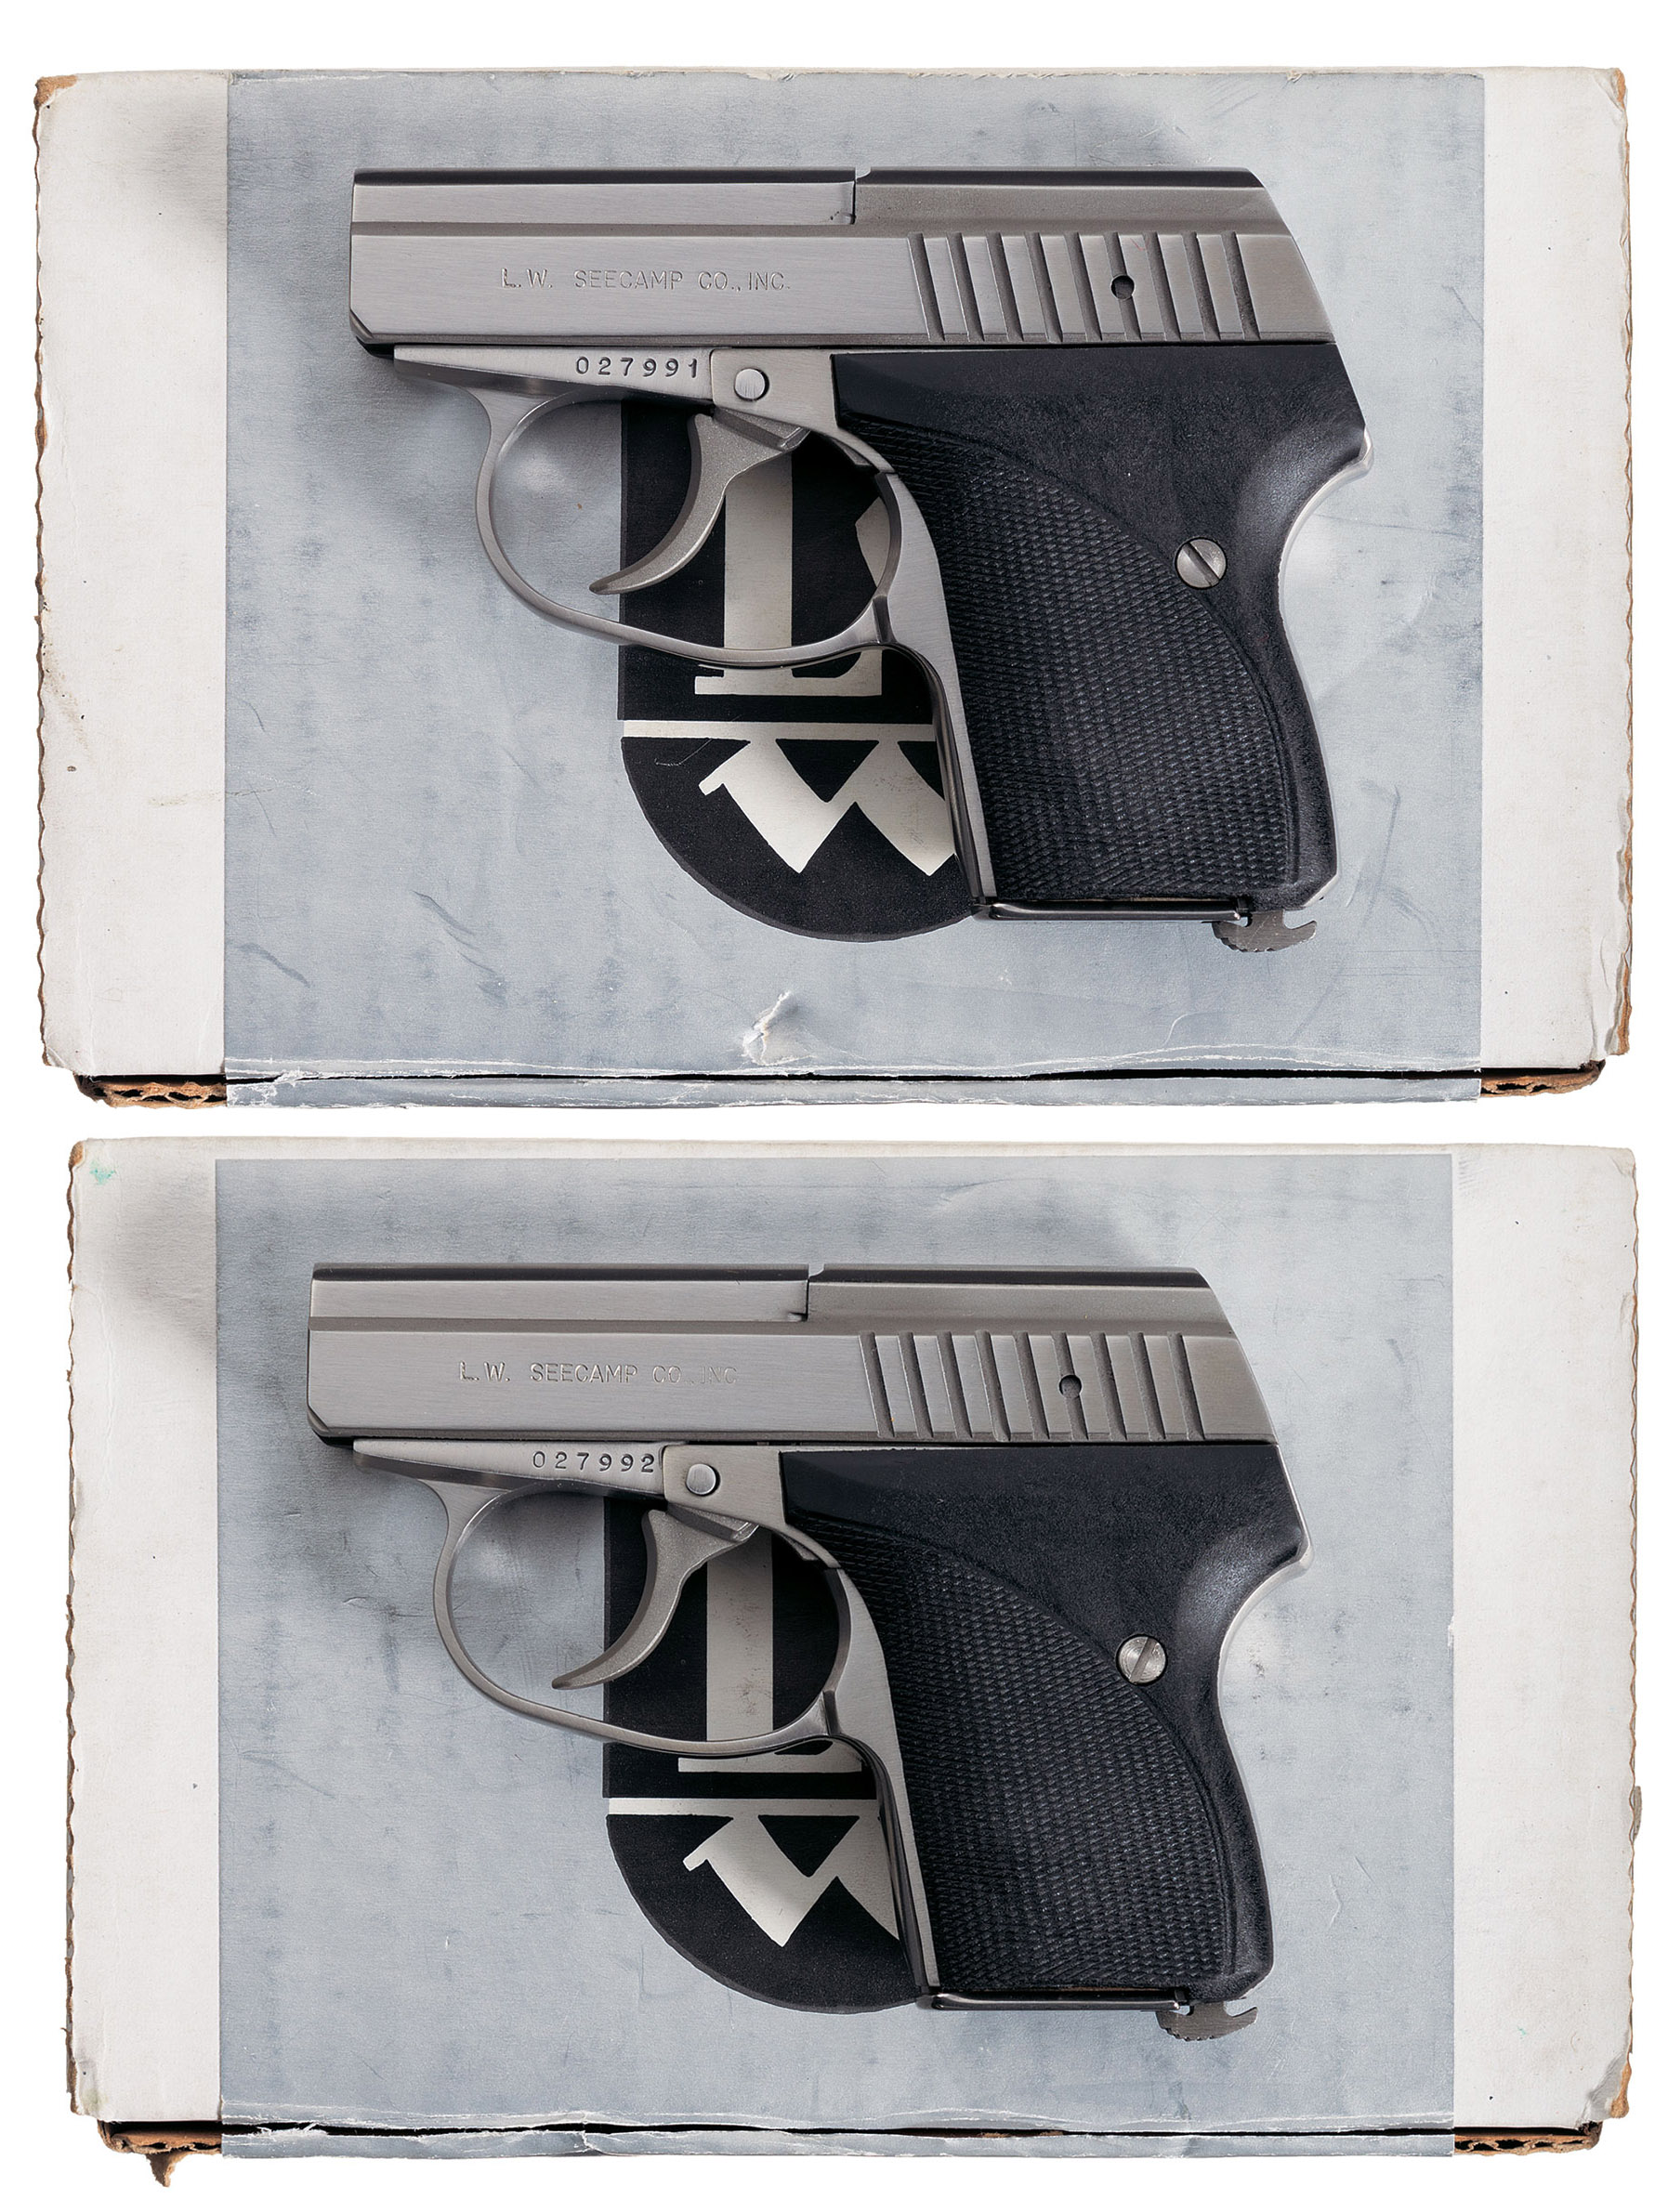 Two Consecutively Serial Numbered Seecamp LWS 32 ACP Pistols